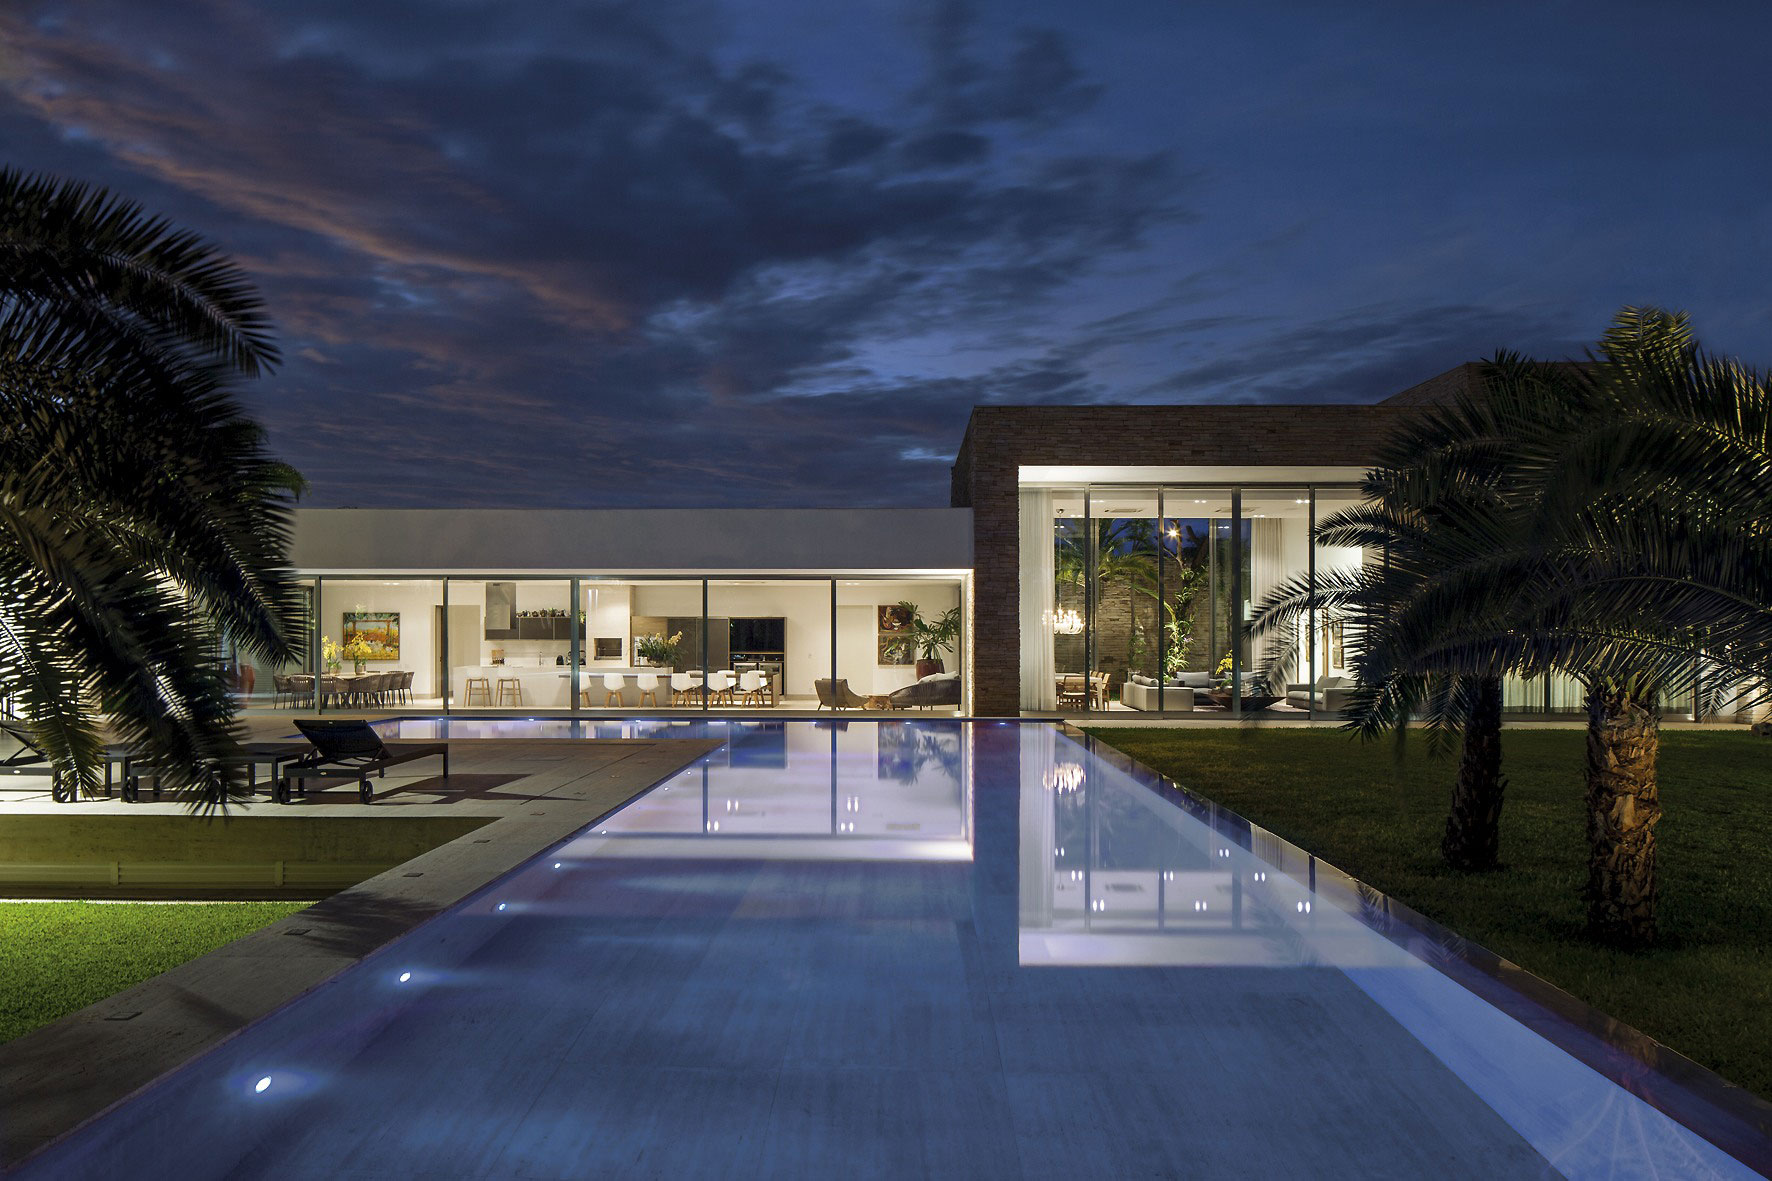 Swimming Pool, Lighting, Evening, Home in Uberlandia, Brazil